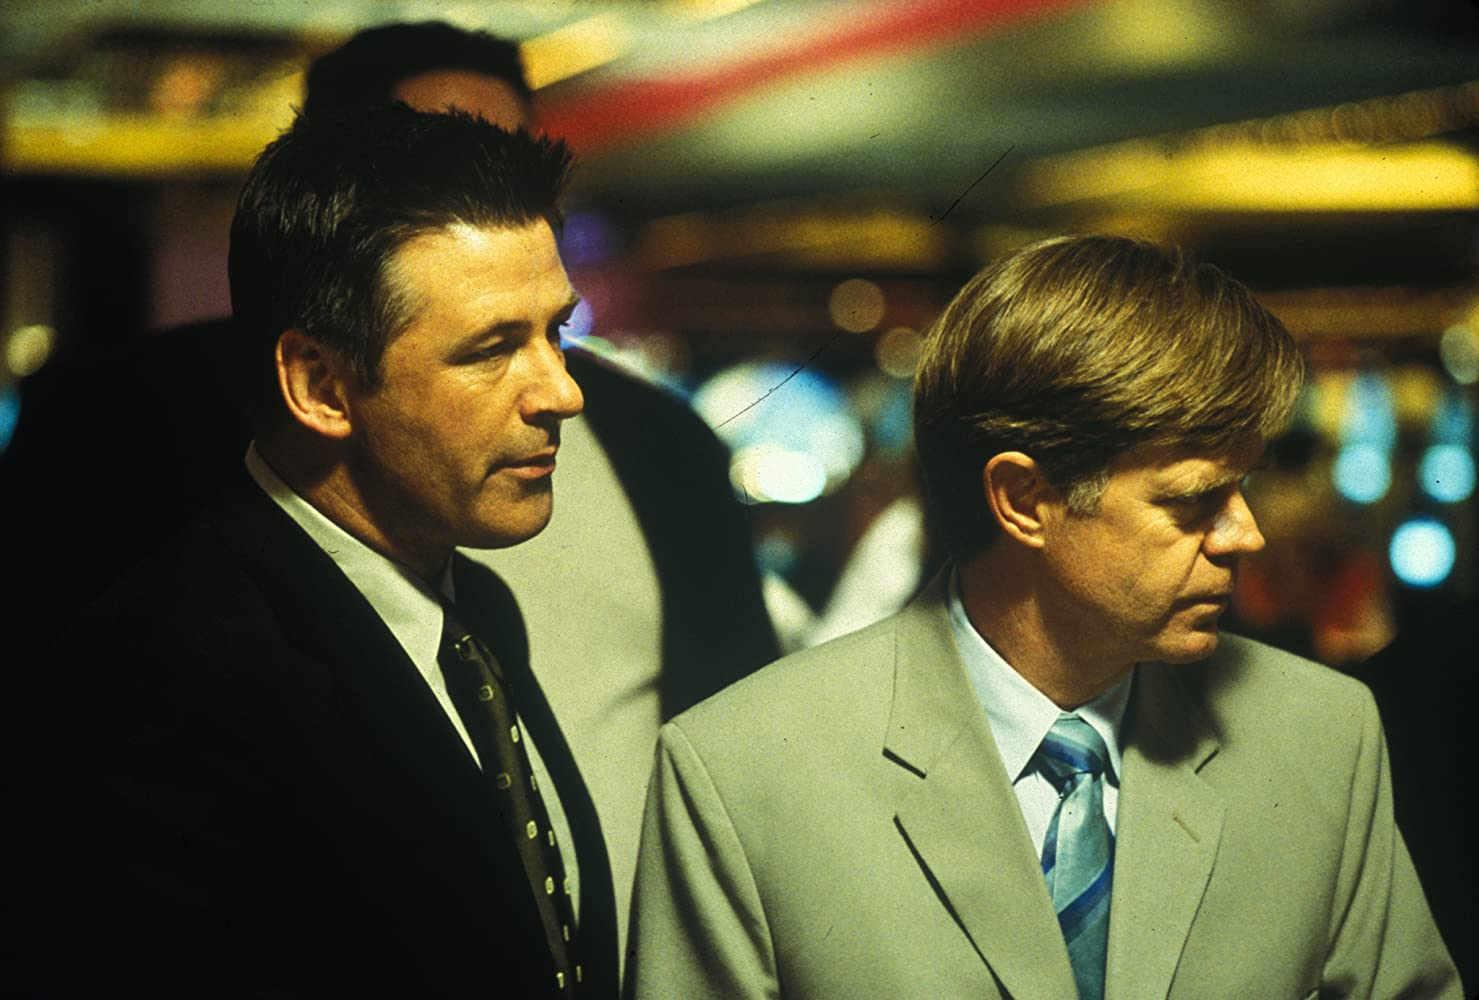 Alec Baldwin and William H. Macy in The Cooler (2003)